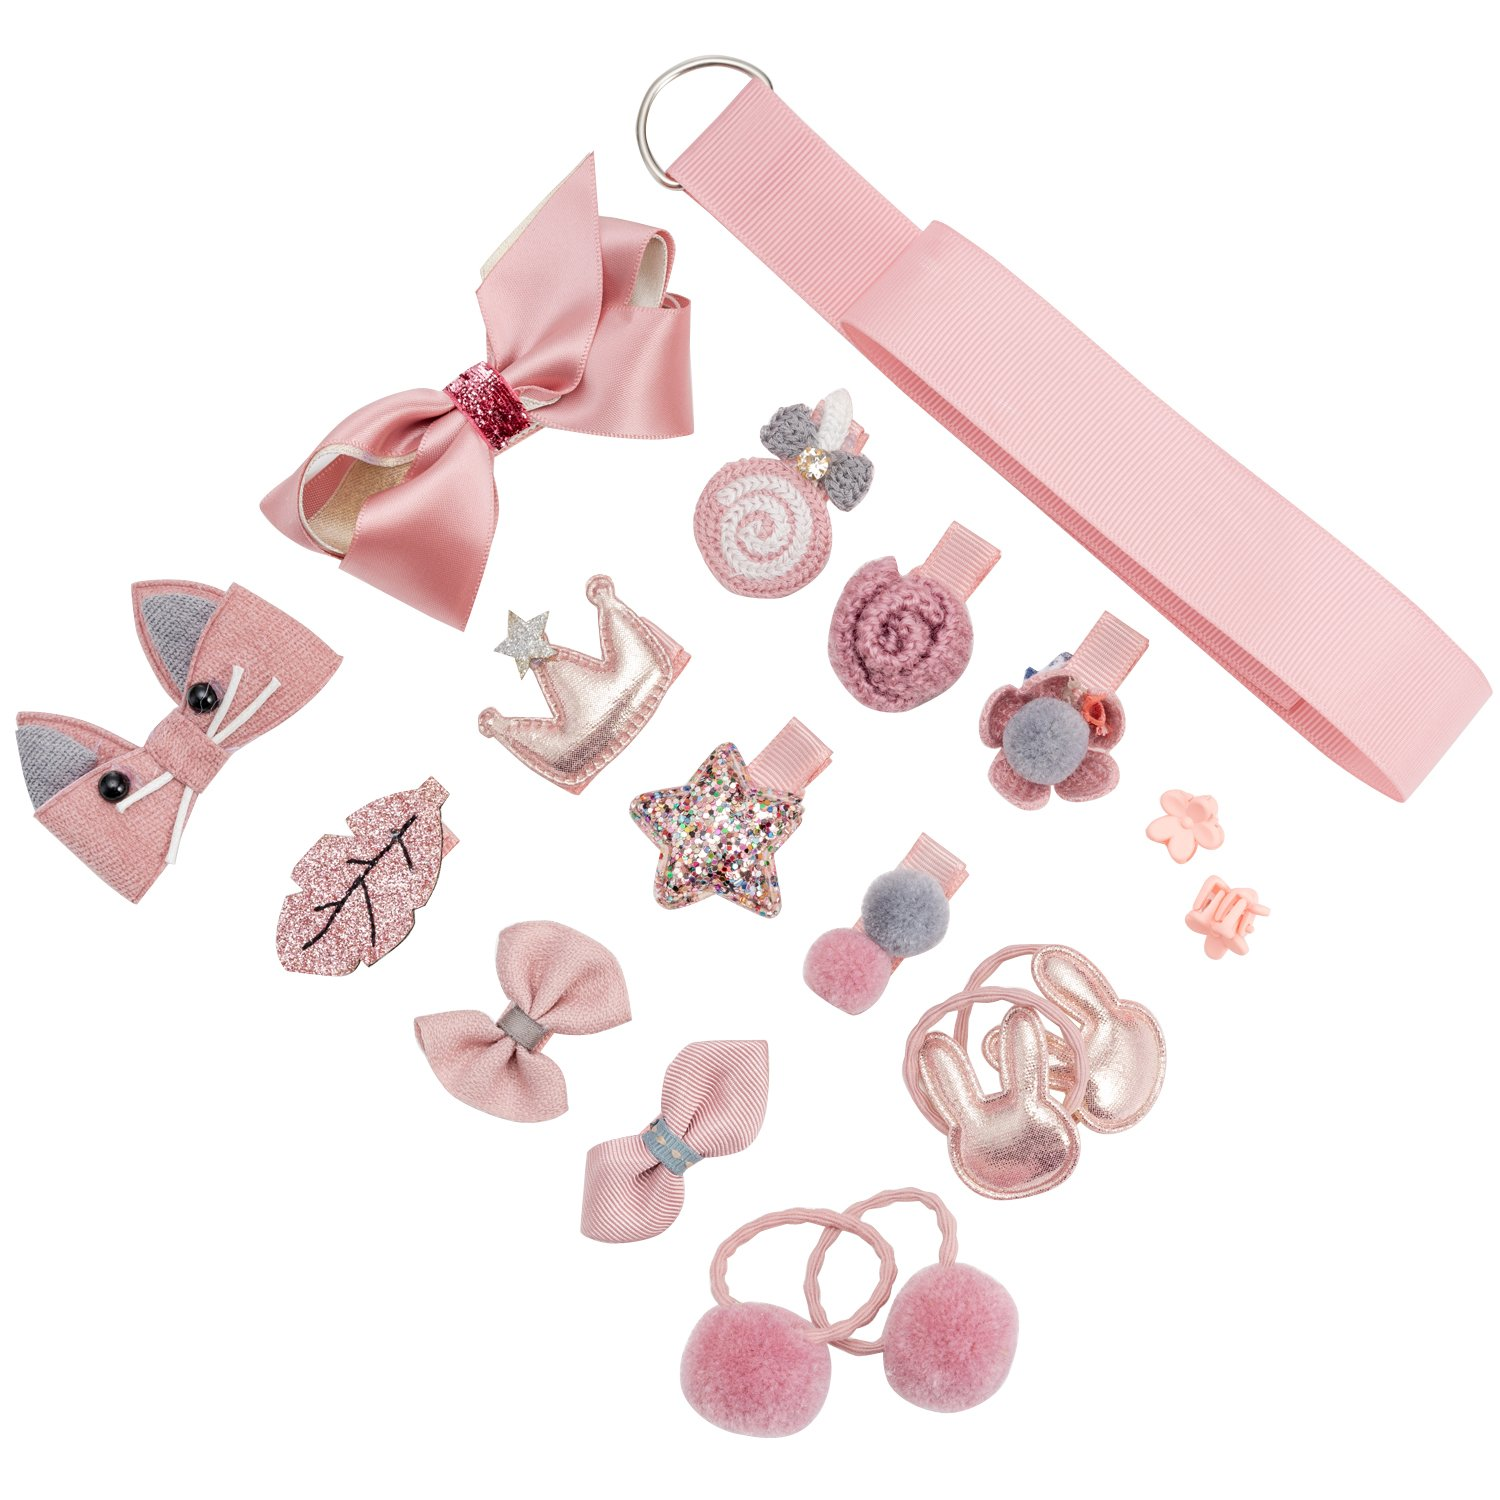 18pcs Toddler Girl Hair Clips Baby Kids Bowknot Barrette Hair Band Birthday Gift (Deep Pink) by handrong (Image #2)